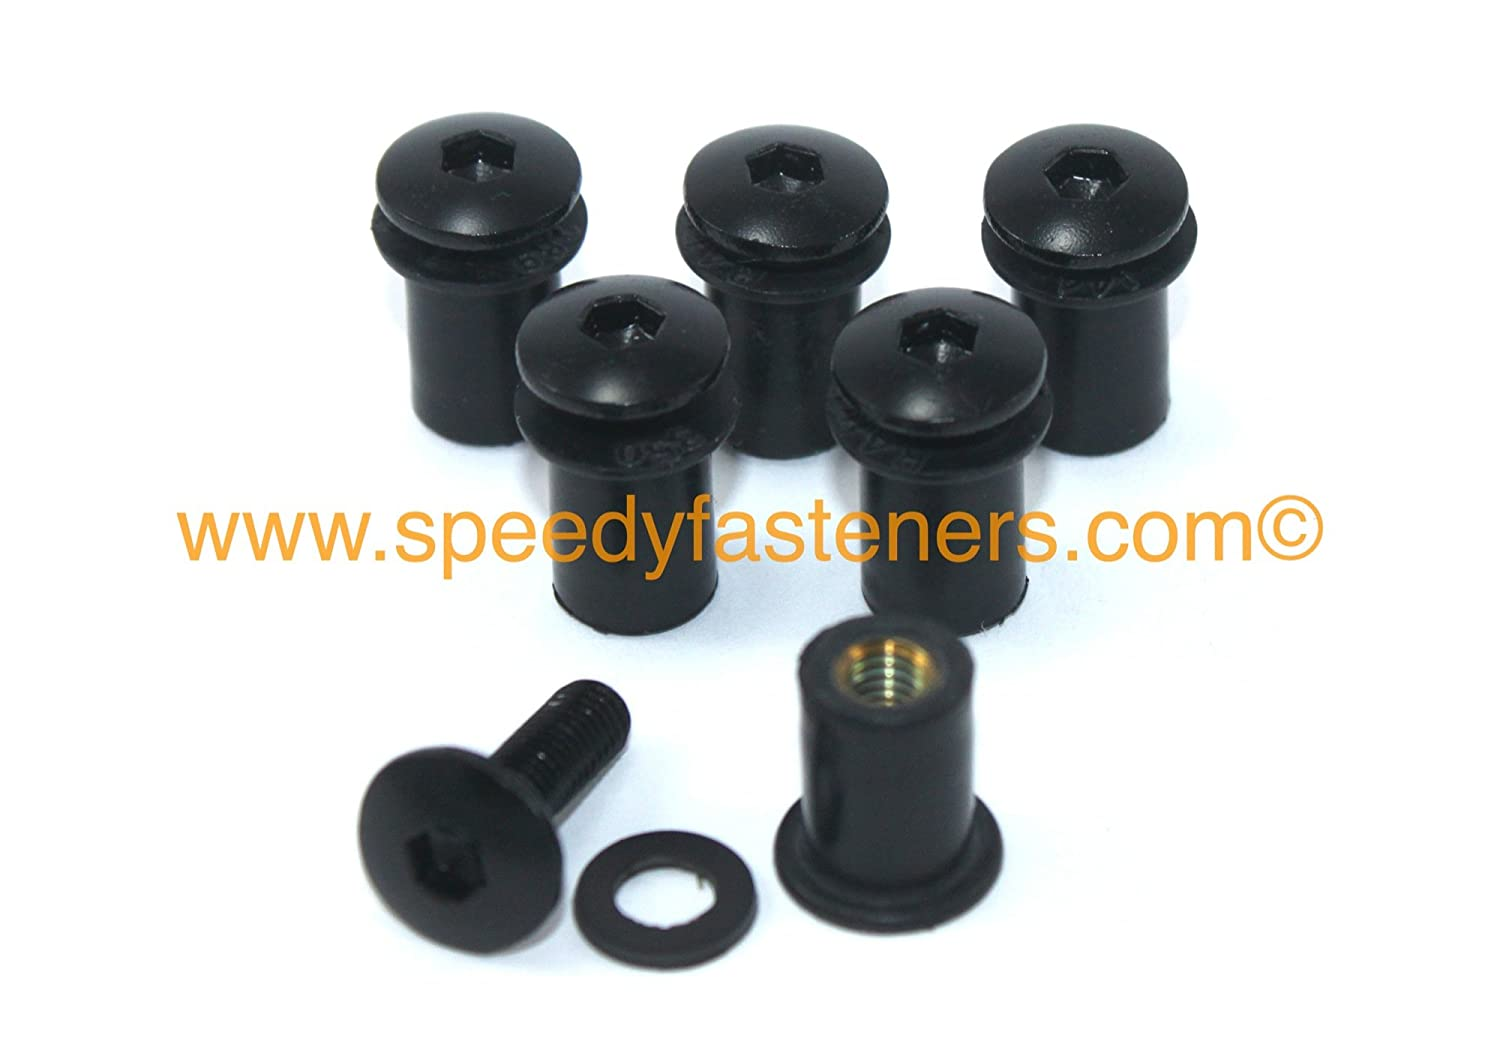 Black Aluminium Motorcycle Wind Screen Windshield Bolts Washers & Wellnuts 6 Piece Kit Various